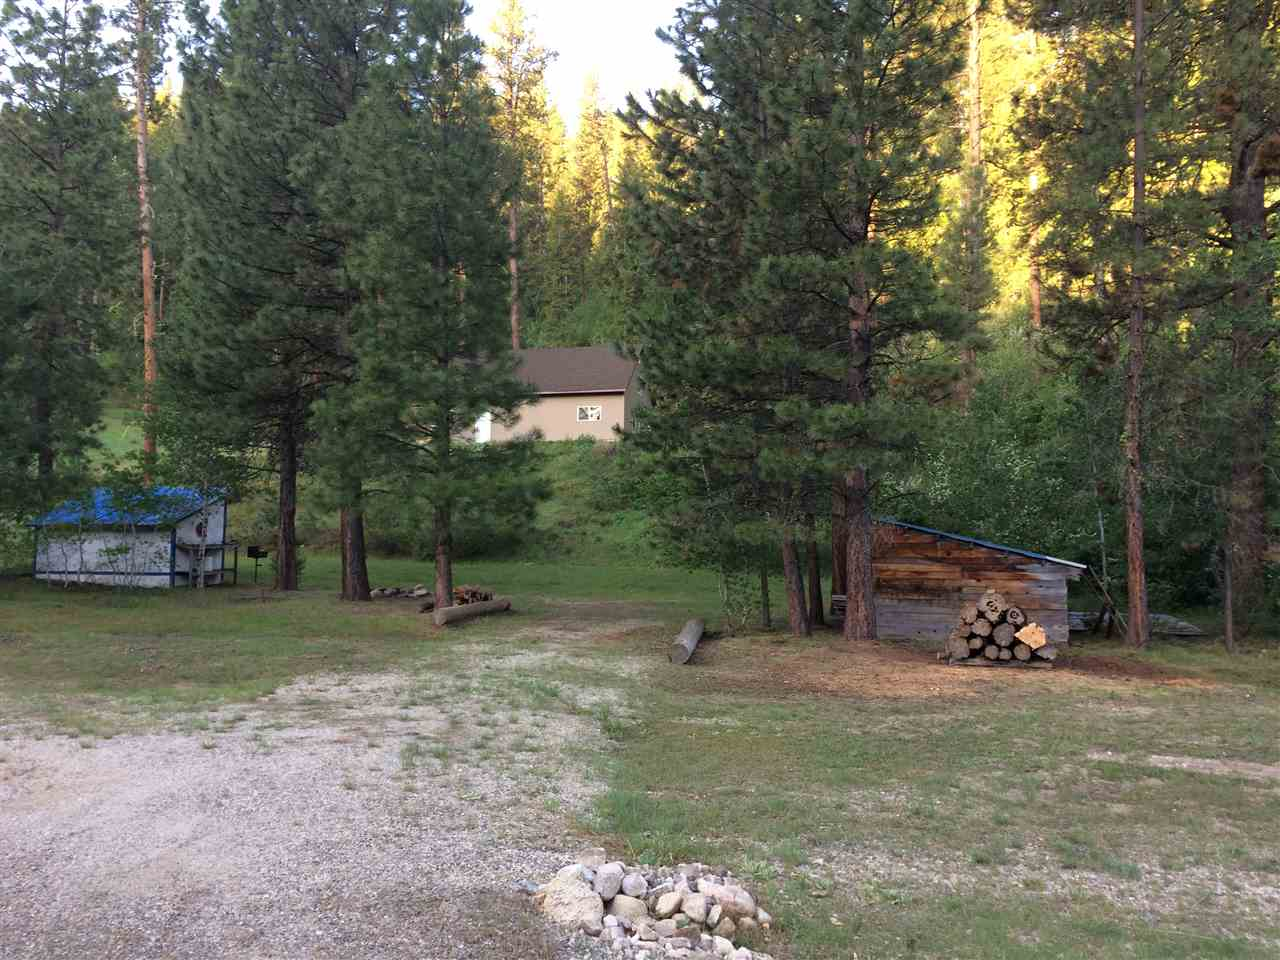 Terreno por un Venta en 1547 E Pine Creek Road 1547 E Pine Creek Road Featherville, Idaho 83647